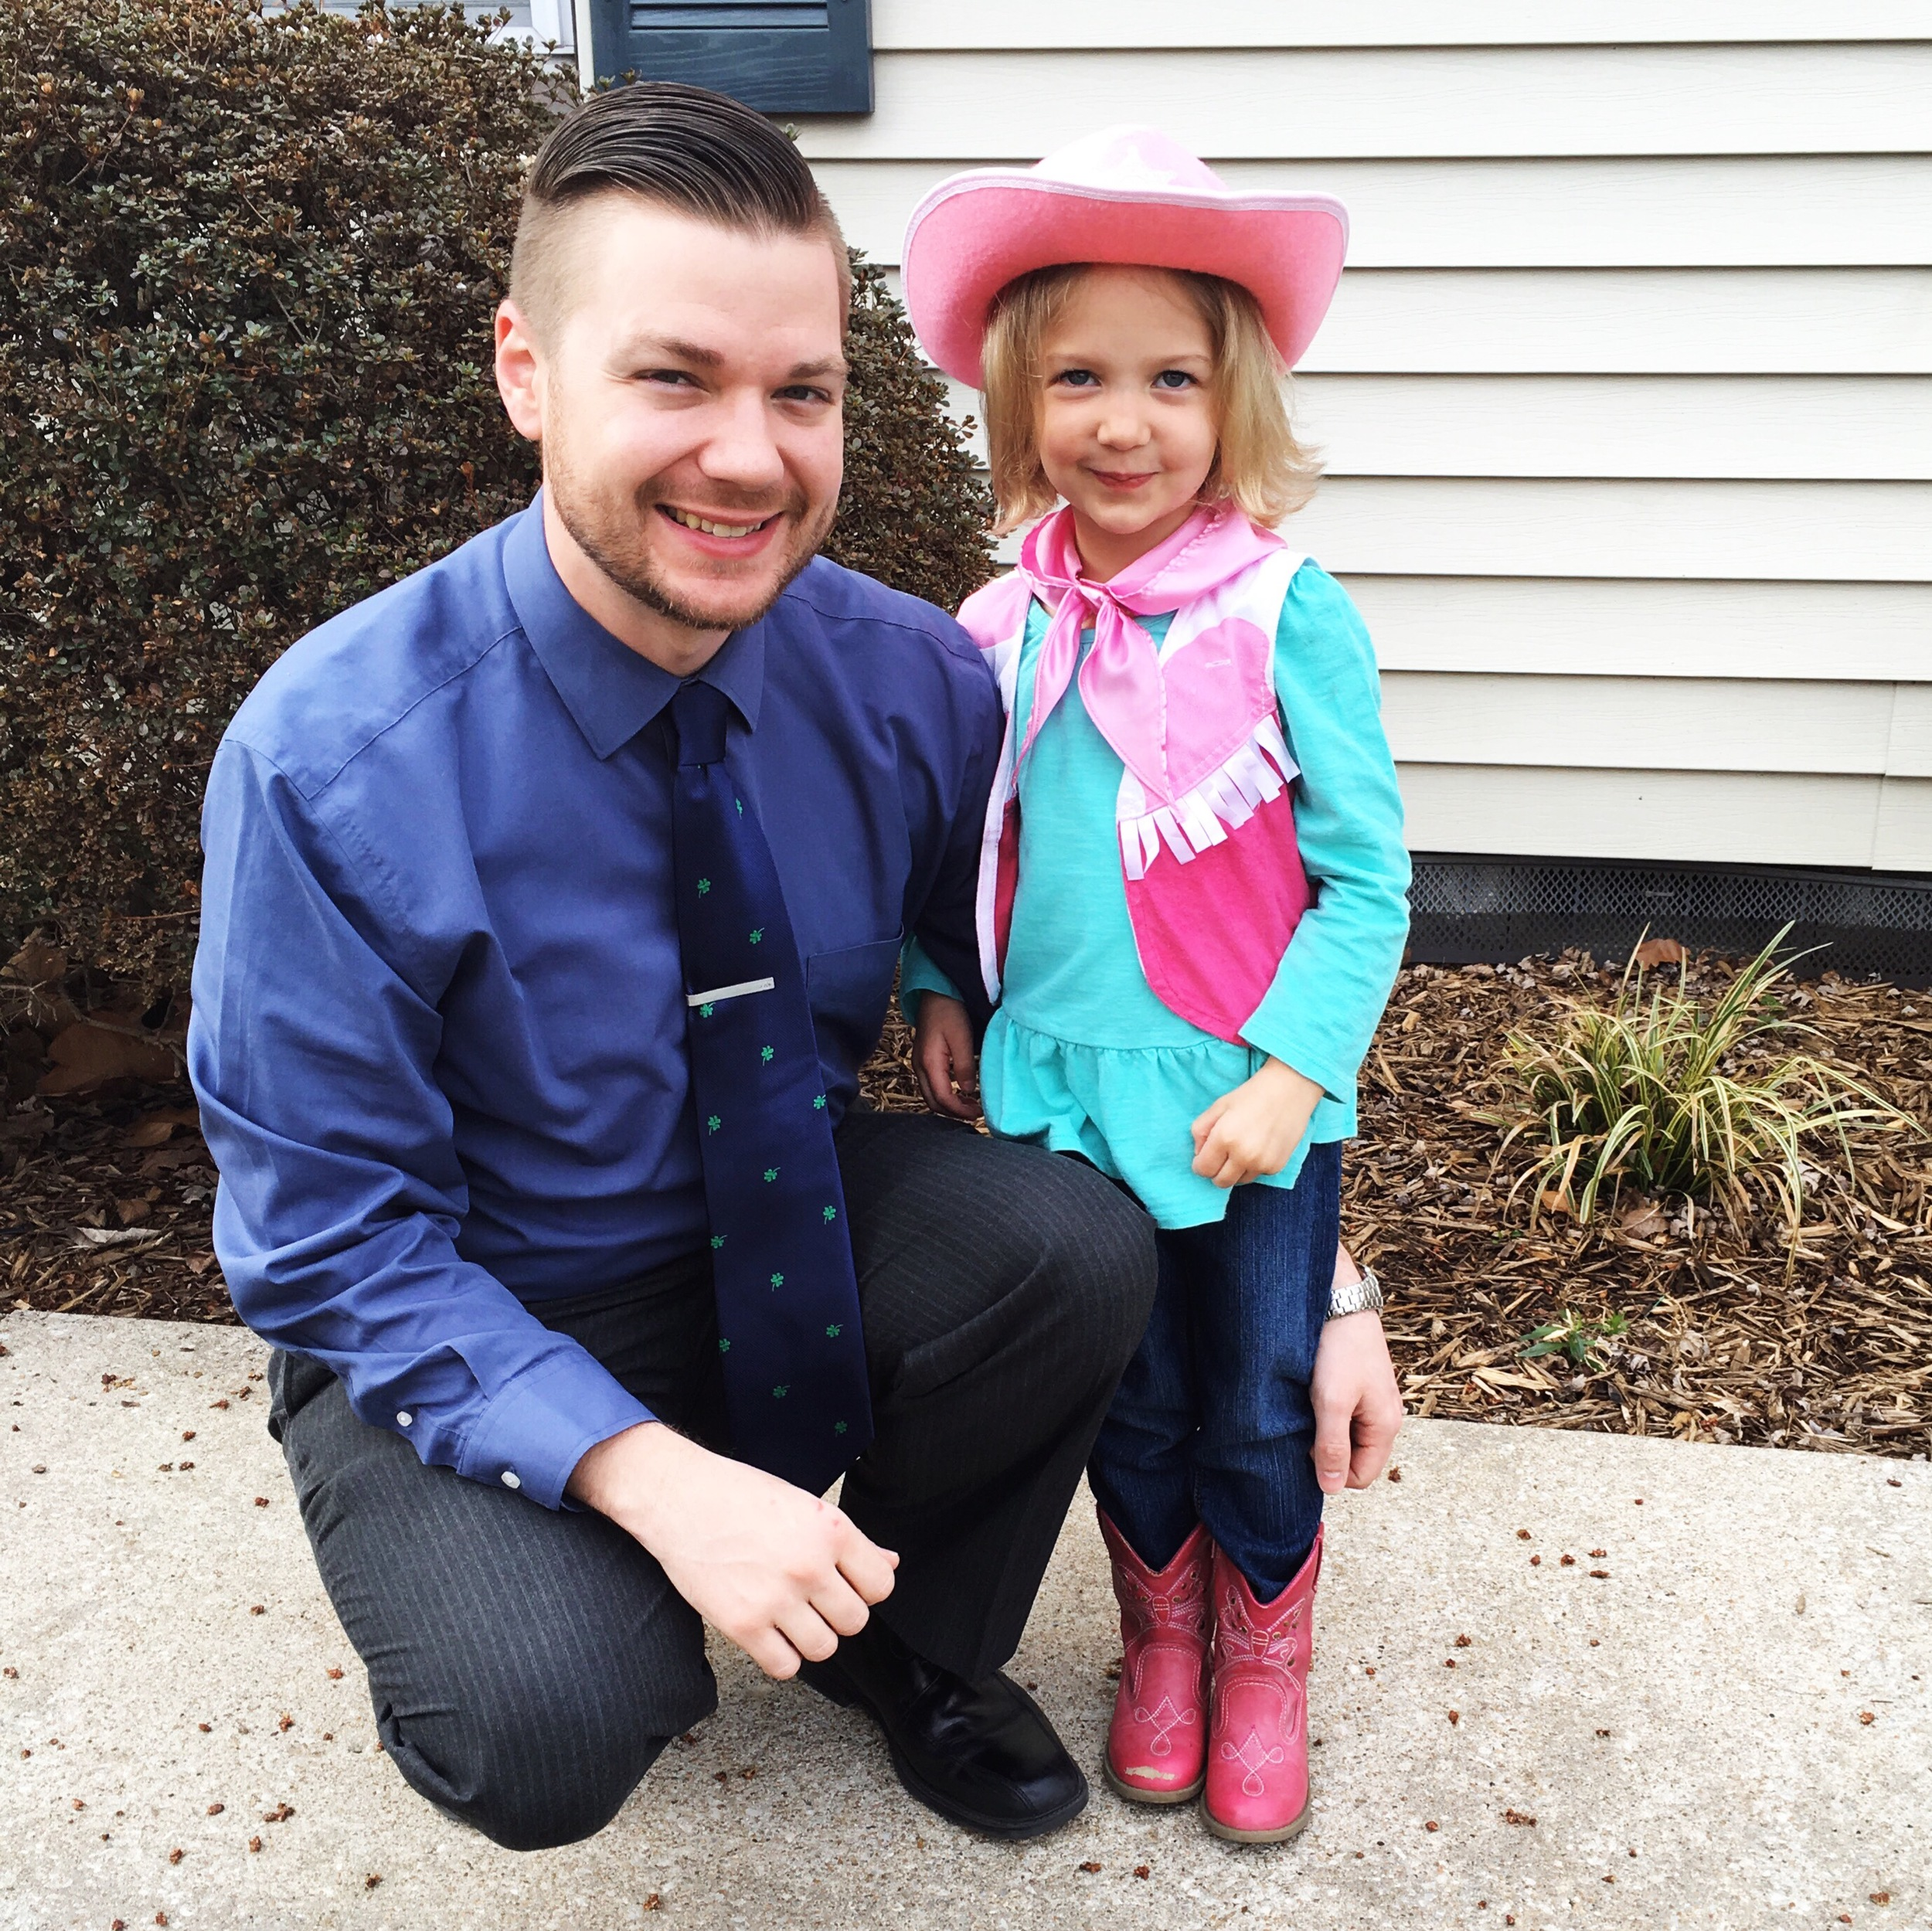 Western Day at school turned special when Daddy asked for a fancy photo-op.